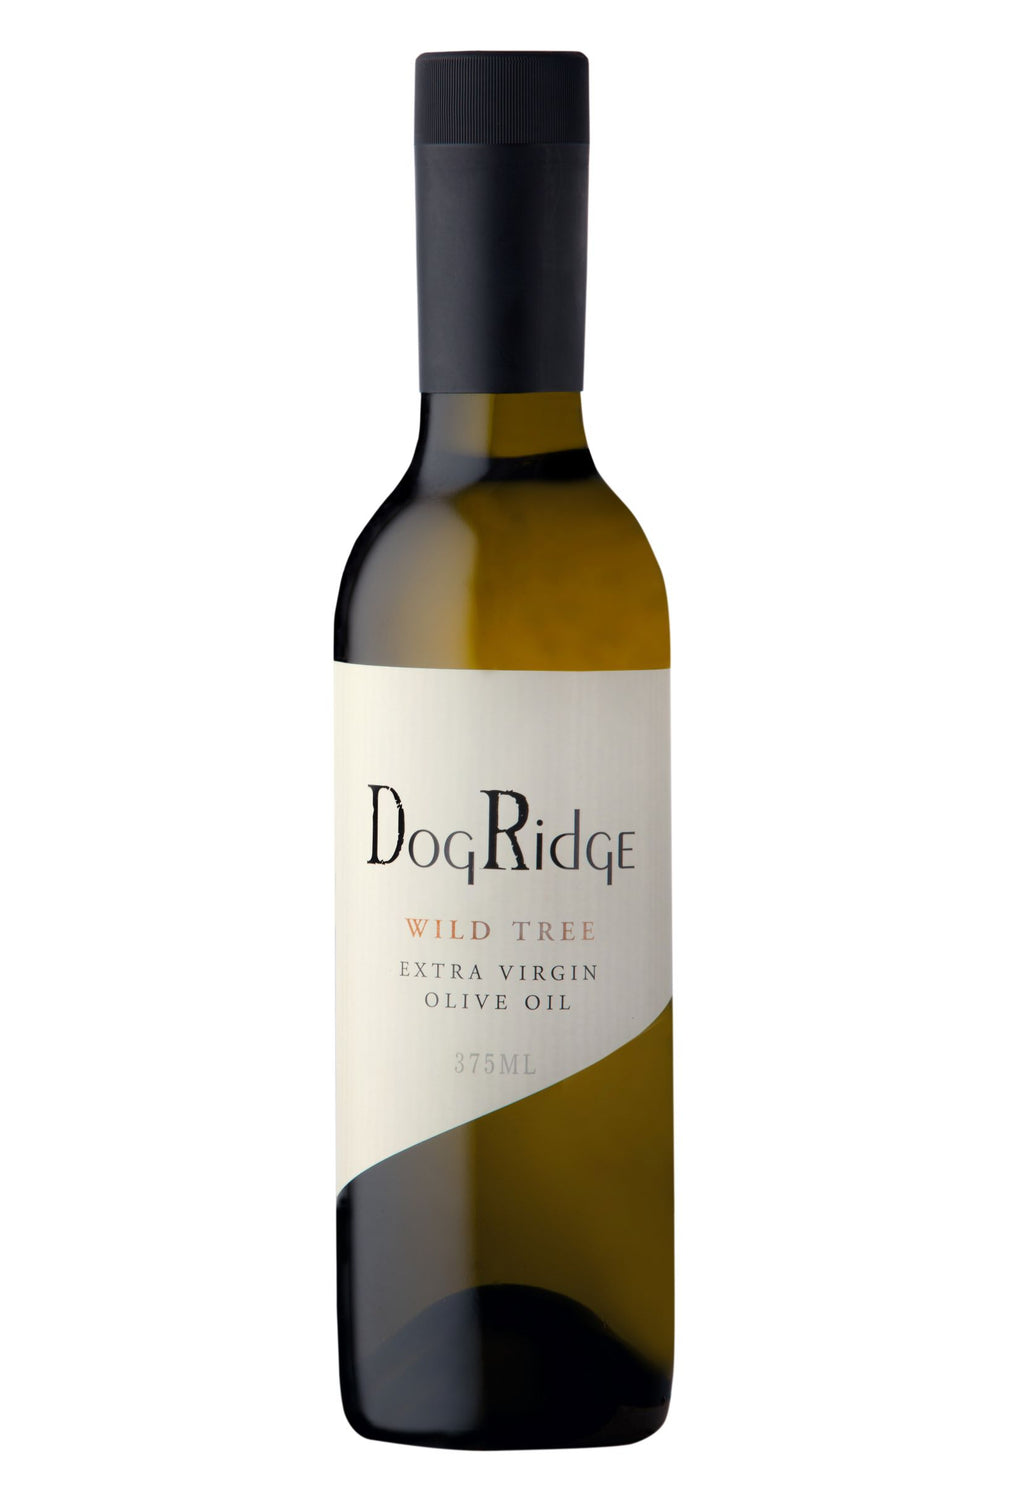 DogRidge WILD TREE Olive Oil - 375ml